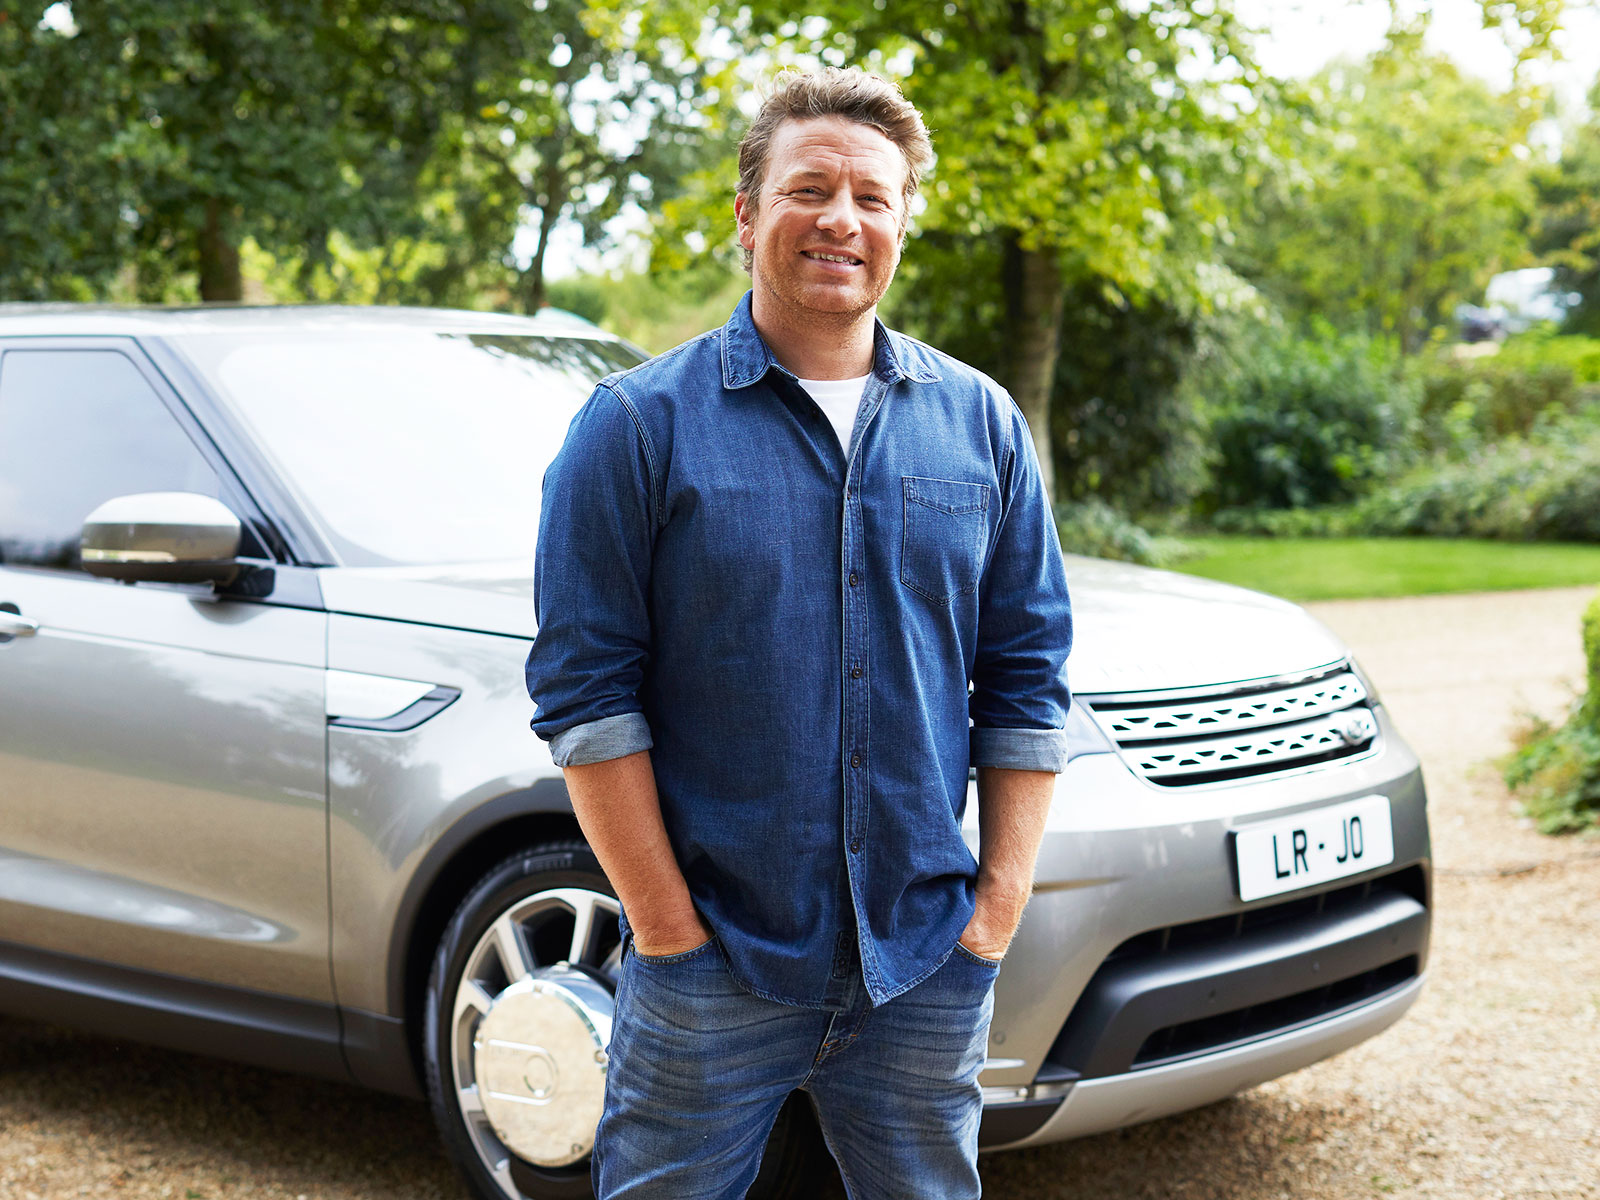 land rover designs by jamie oliver